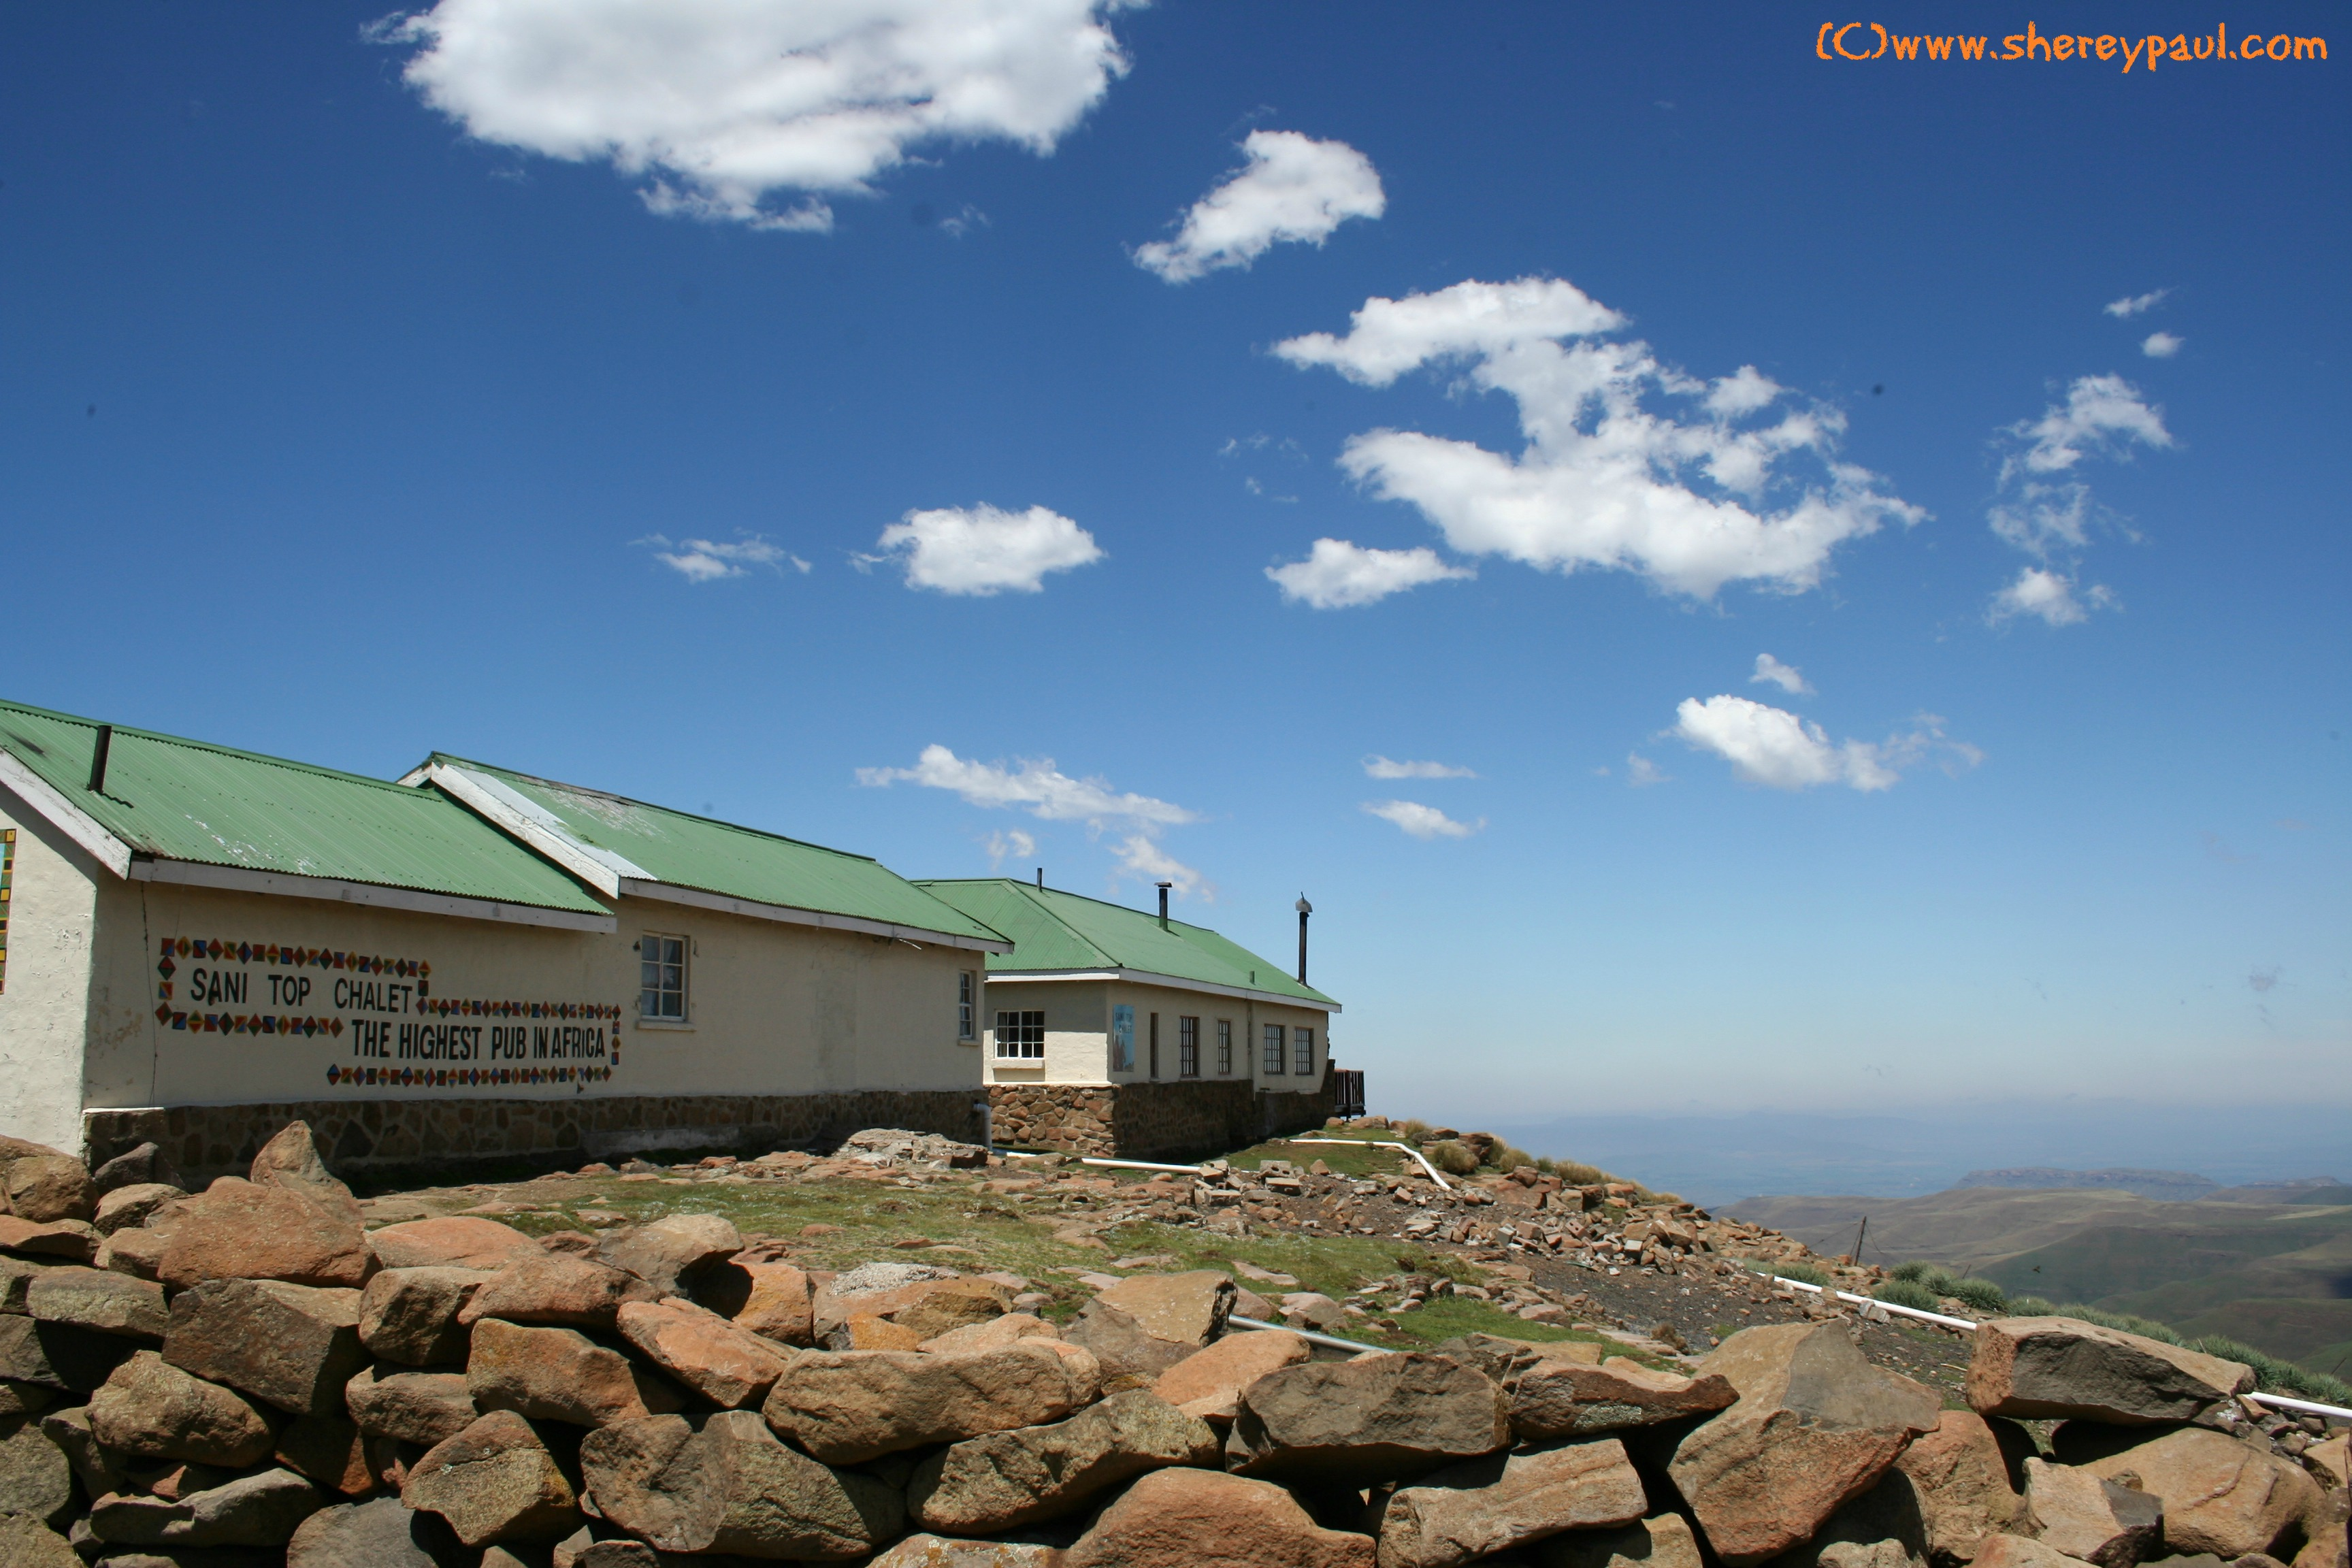 AtoZ: H is for Highest Pub in Africa, Sani Top Chalet – ww/mm